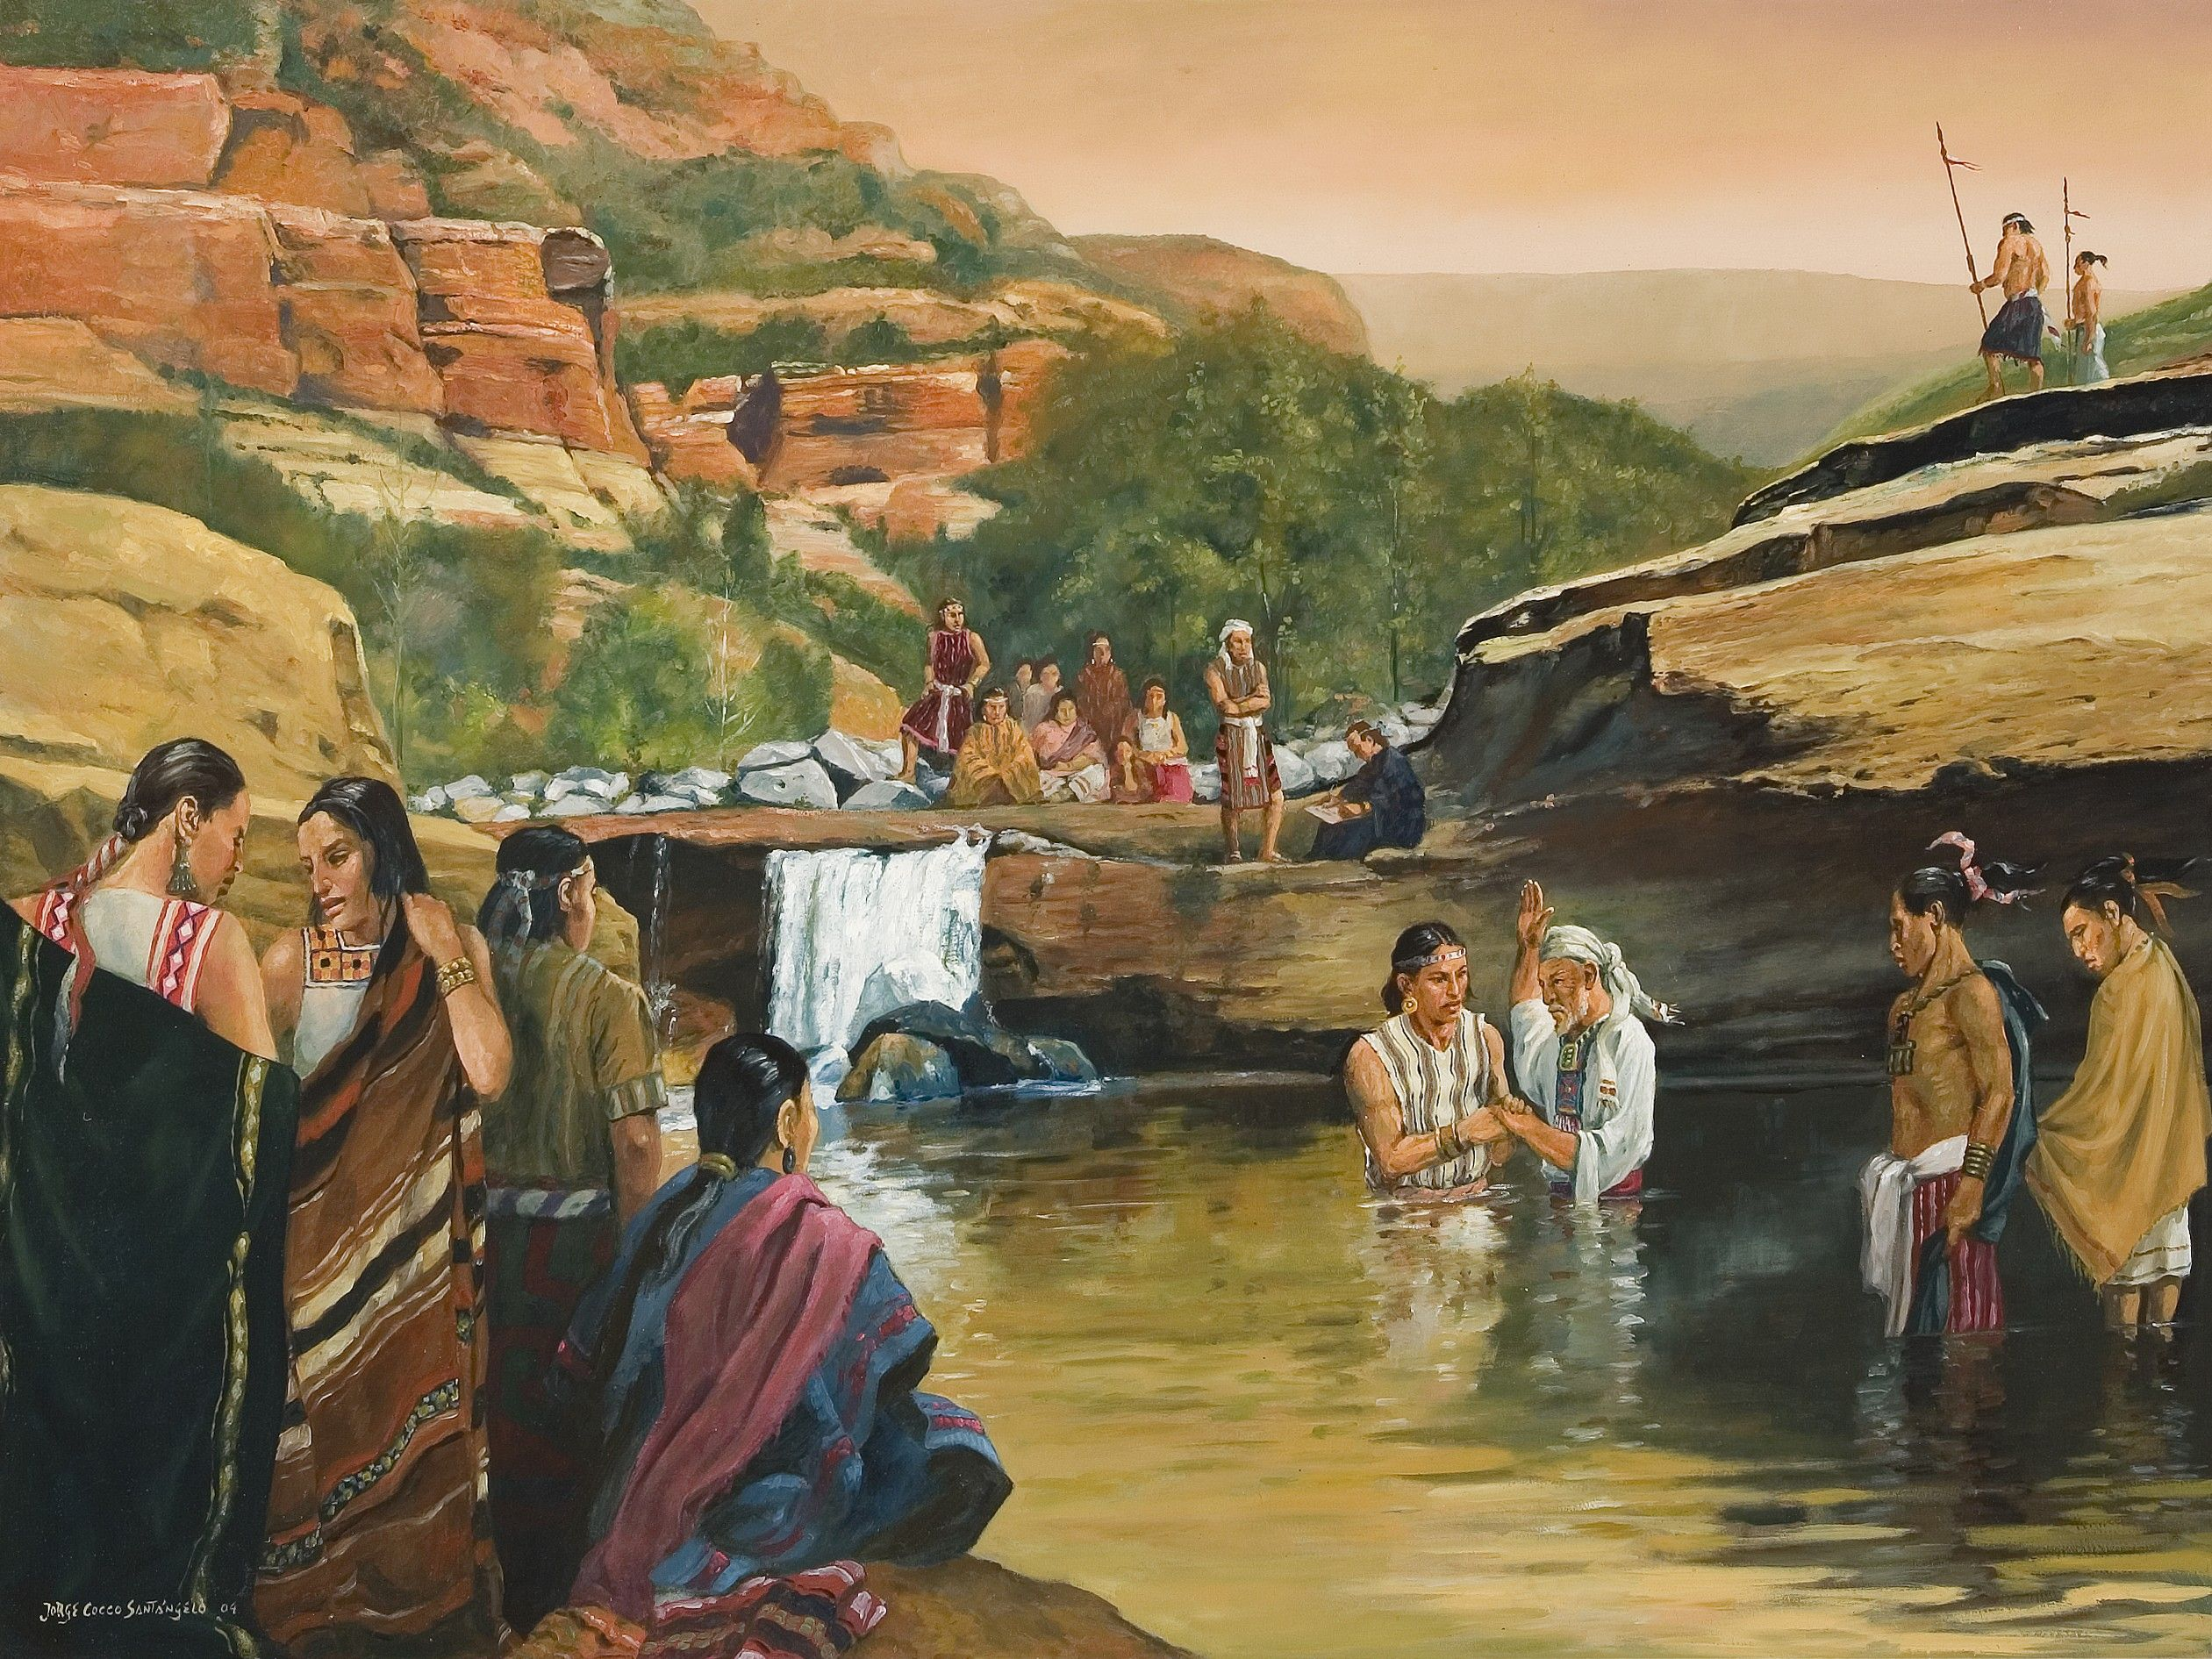 An oil painting by Jorge Cocco depicting Alma baptizing converts at the Waters of Mormon.